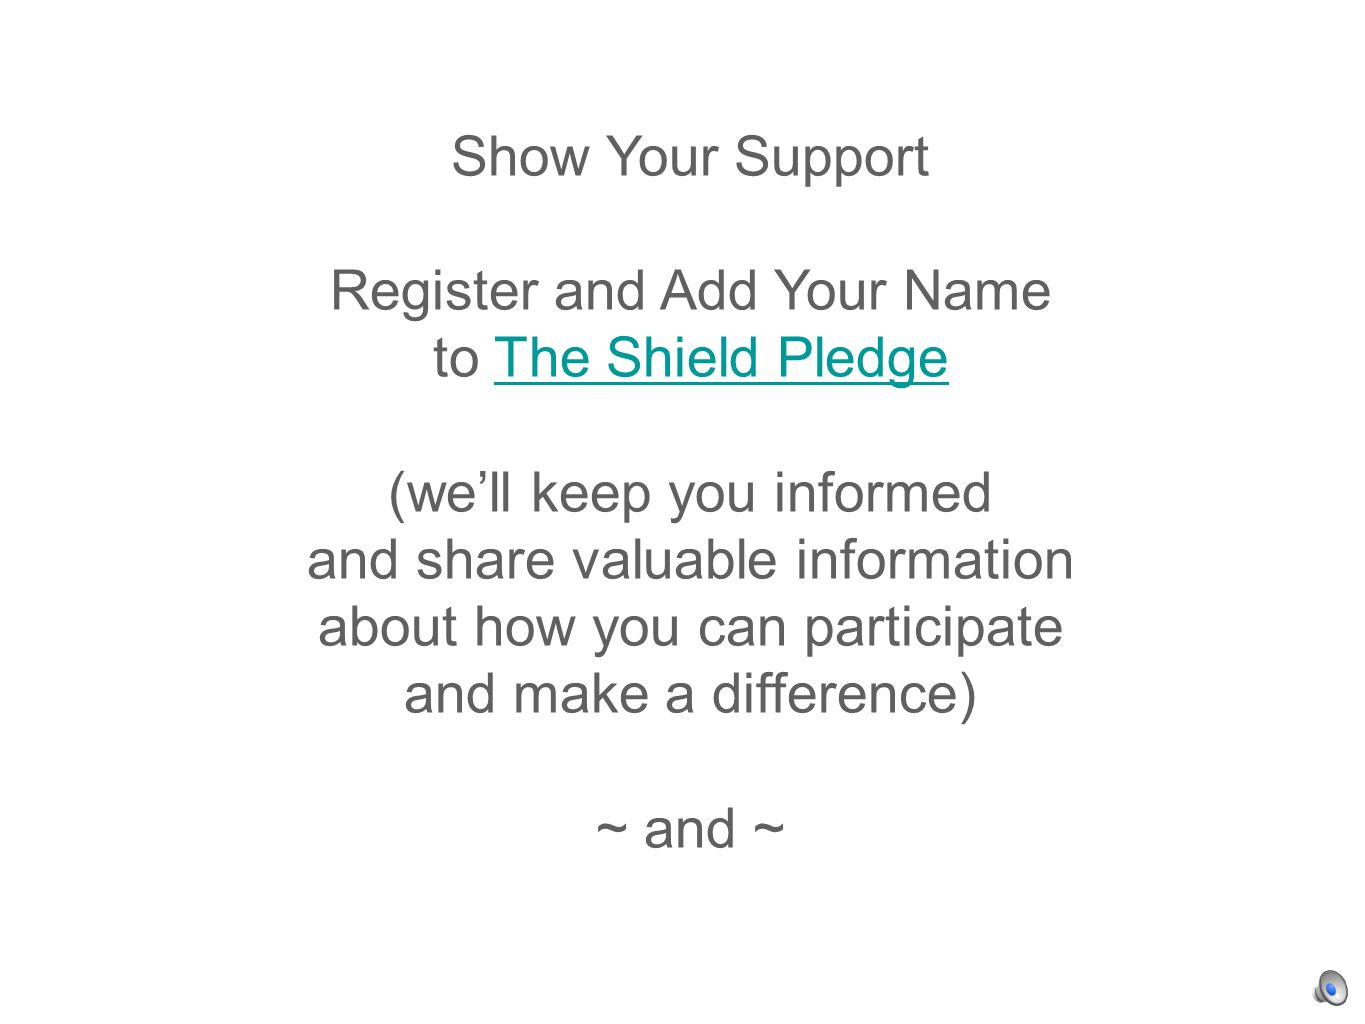 Show Your Support Register and Add Your Name to The Shield PledgeThe Shield Pledge (well keep you informed and share valuable information about how you can participate and make a difference) ~ and ~